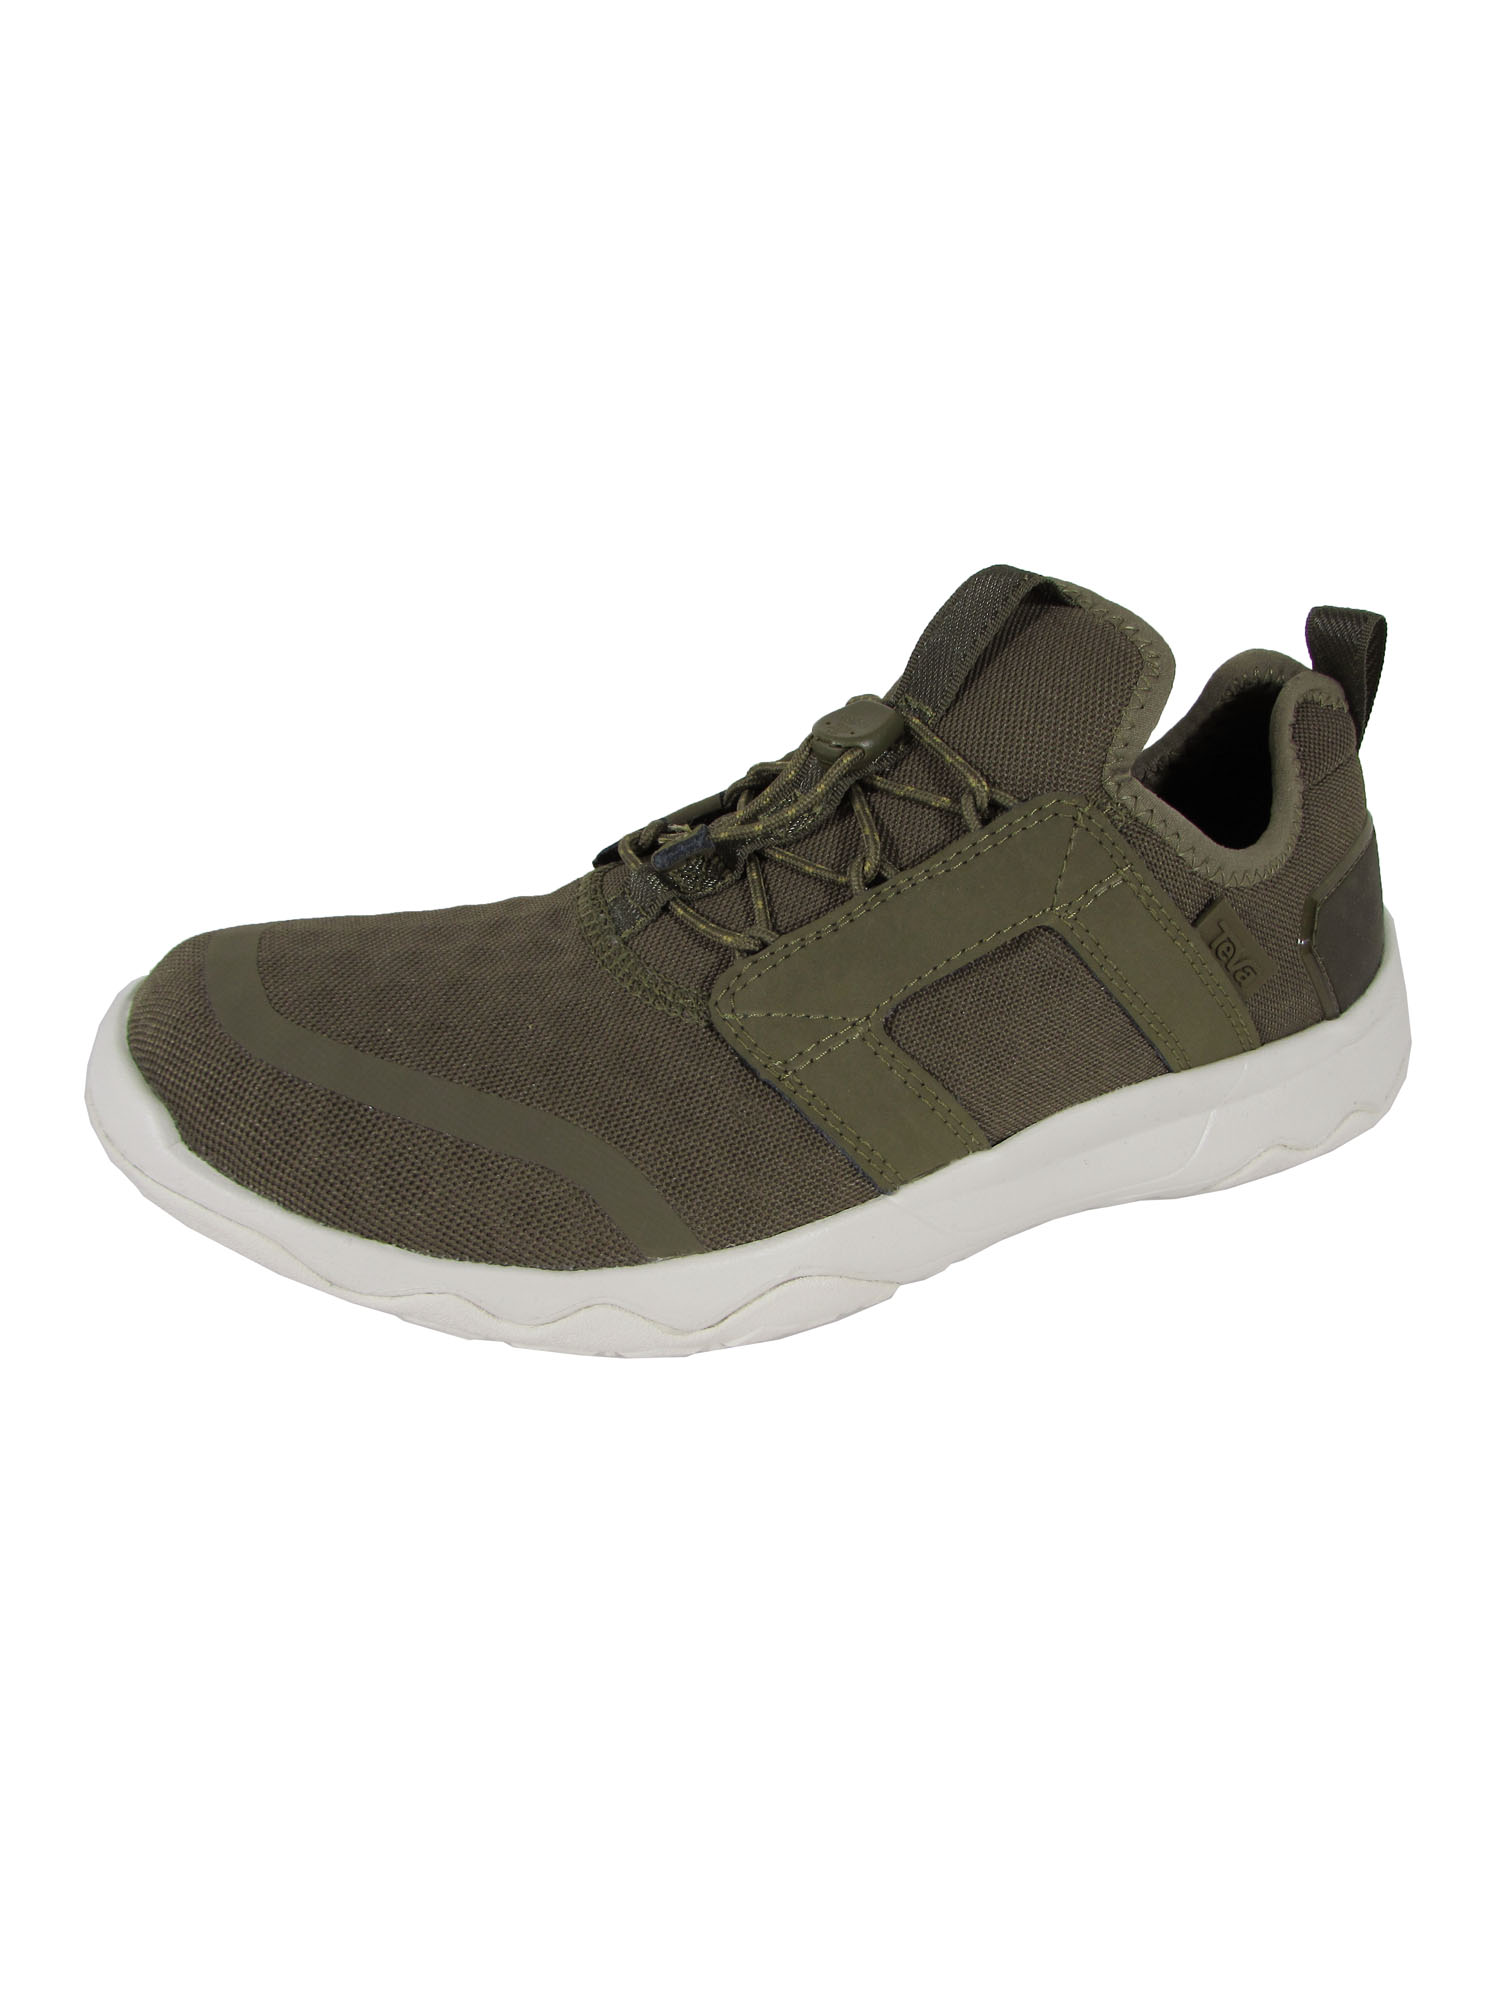 Teva  Hiking Uomo Arrowood Swift Lace Hiking  Sneaker Schuhes d78bcd